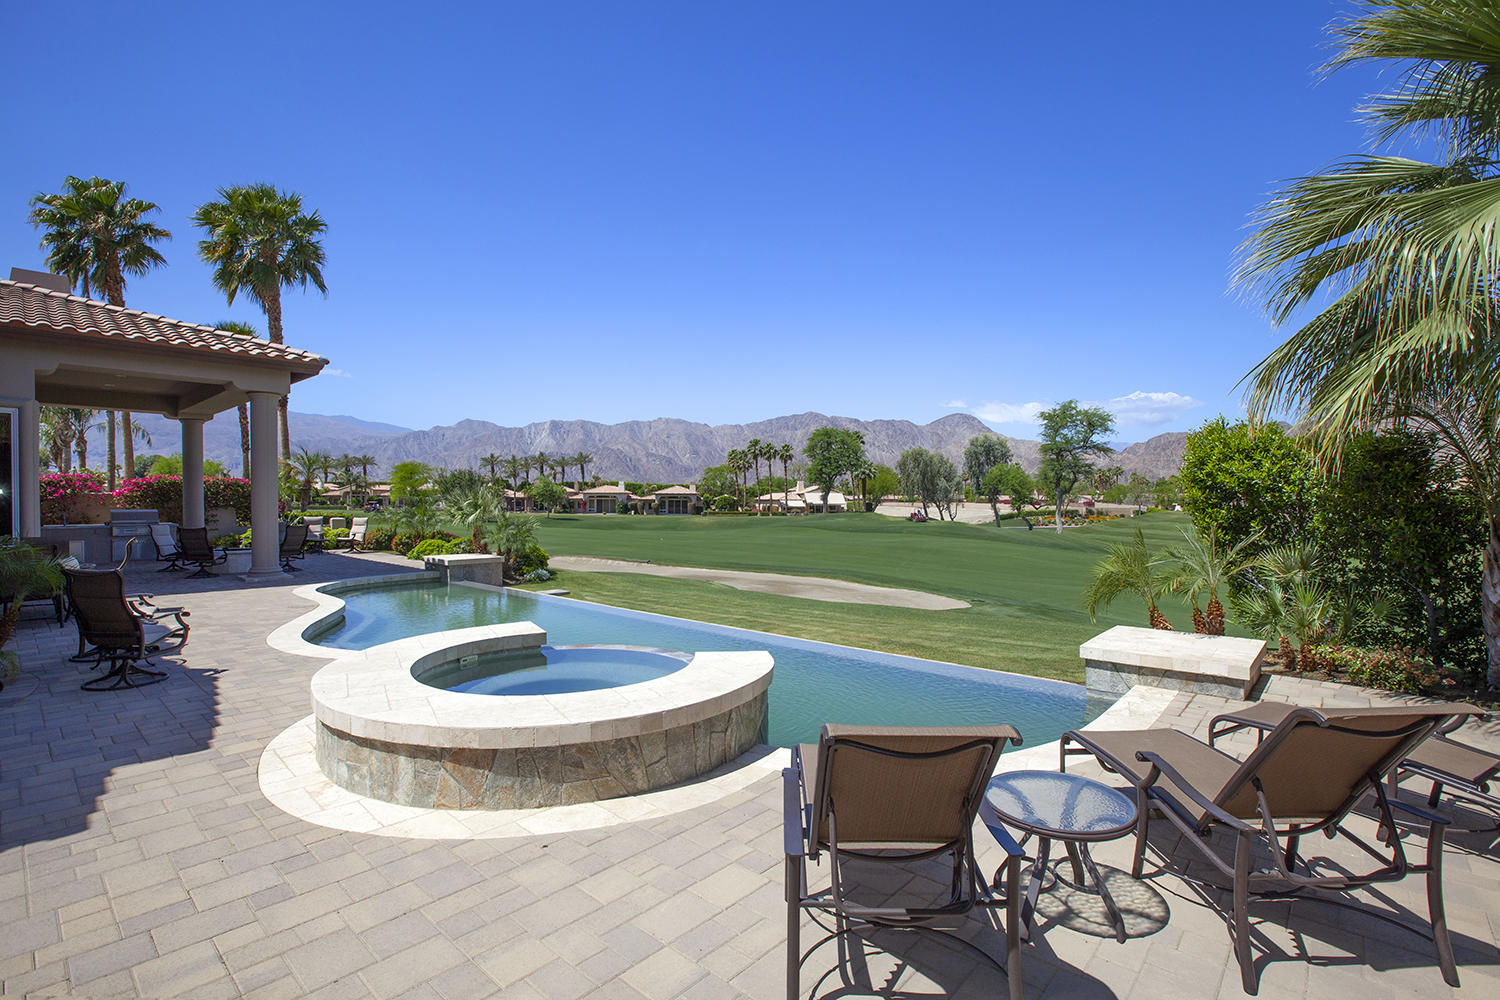 A Montana III unlike any other in Rancho La Quinta! Set on a near end of cul-de-sac estate lot, this home was rebuilt and re-envisioned in 2015 removing the primary wall that separates the formal living room from the kitchen & family room - resulting in a spacious greatroom configuration with views across the infinity edge pool, 14th fairway Jones Course & panoramic west Santa Rosa Mountains. From the marble flooring, to the completely reformatted kitchen with 2 floating granite islands, to the newer Fleetwood slider doors, York AC & even the roof, this home & floorplan have been refined and re-designed to create the ultimate Rancho La Quinta Estate. Private courtyard entry with custom glass and wood double door entry; chef's kitchen with newer granite surfaces, newer cabinets, backsplash and stainless steel appliances; electronic drop down blinds in great rm.; granite countered serving area with wine fridge & storage; all newer can lighting & custom linear fireplace; all newer raised panel solid core doors; newer interior baths with newer cabinets, counters and raised counter heights and newer hardware; infinity edge pool with extensive use of custom pavers and firepit; side loaded rear guest house sits in rear of property with bocce ball court and custom synthetic turf putting green and newer custom landscaping; 3 car garage and Water Cop flood detection system. Huge stainless steel & granite BBQ station; Furnished per inventory.